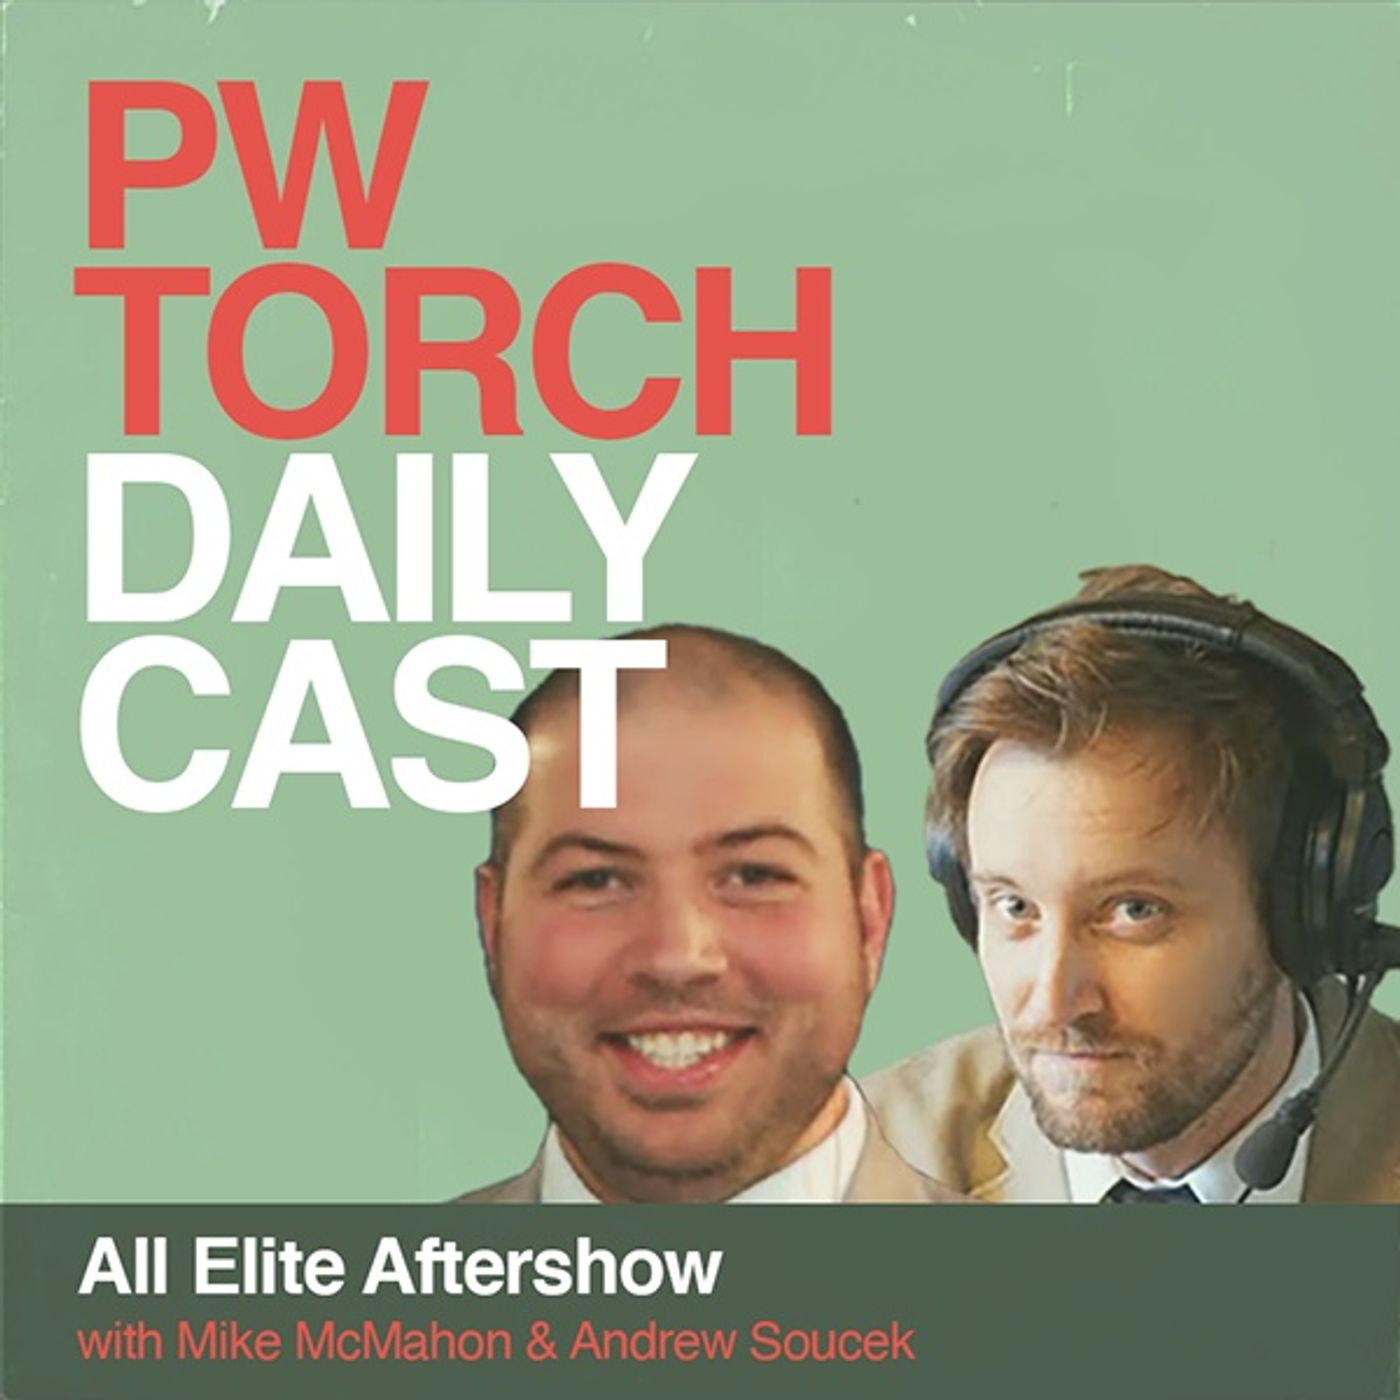 PWTorch Dailycast - All Elite Aftershow - McMahon and Soucek discuss Blood and Guts, Daniel Bryan's situation, mailbag, more